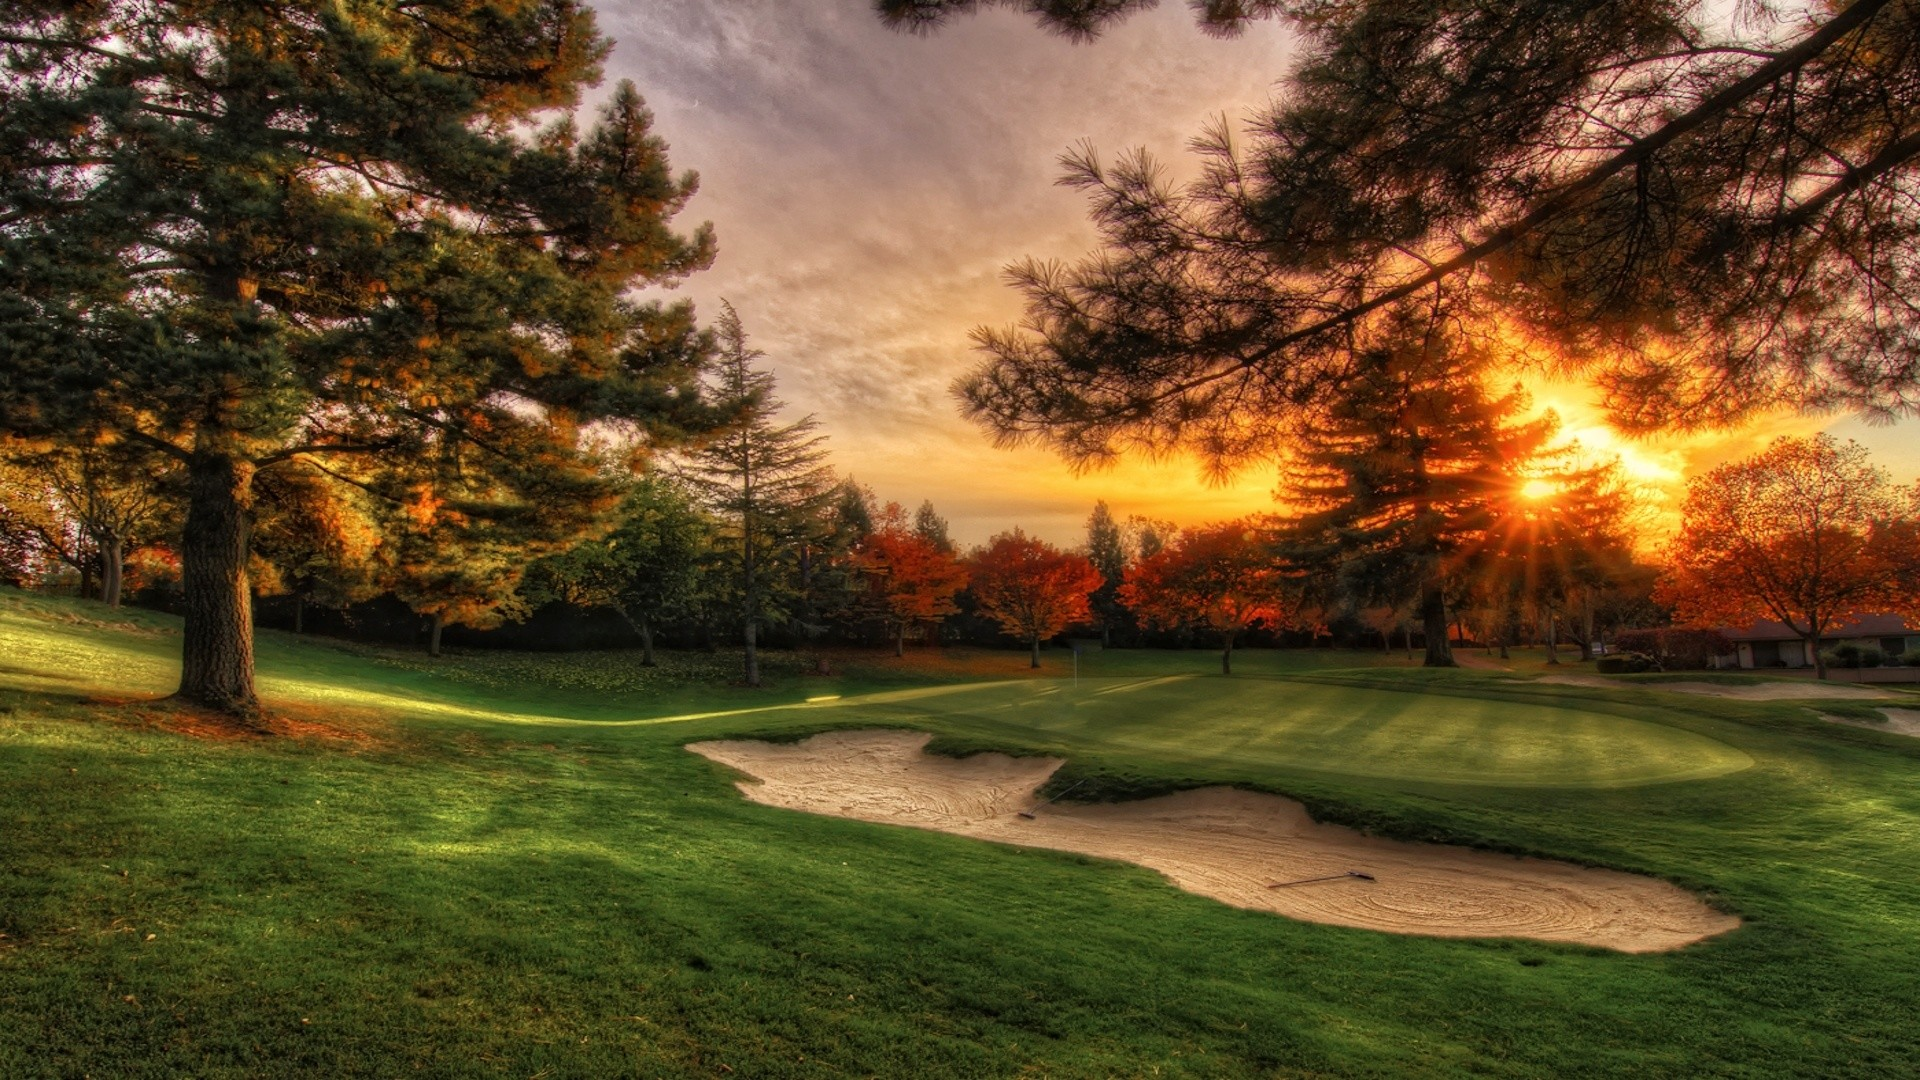 scenic wallpaper hdr | high resolution Download Golf Sunset Hdr  248786 background .